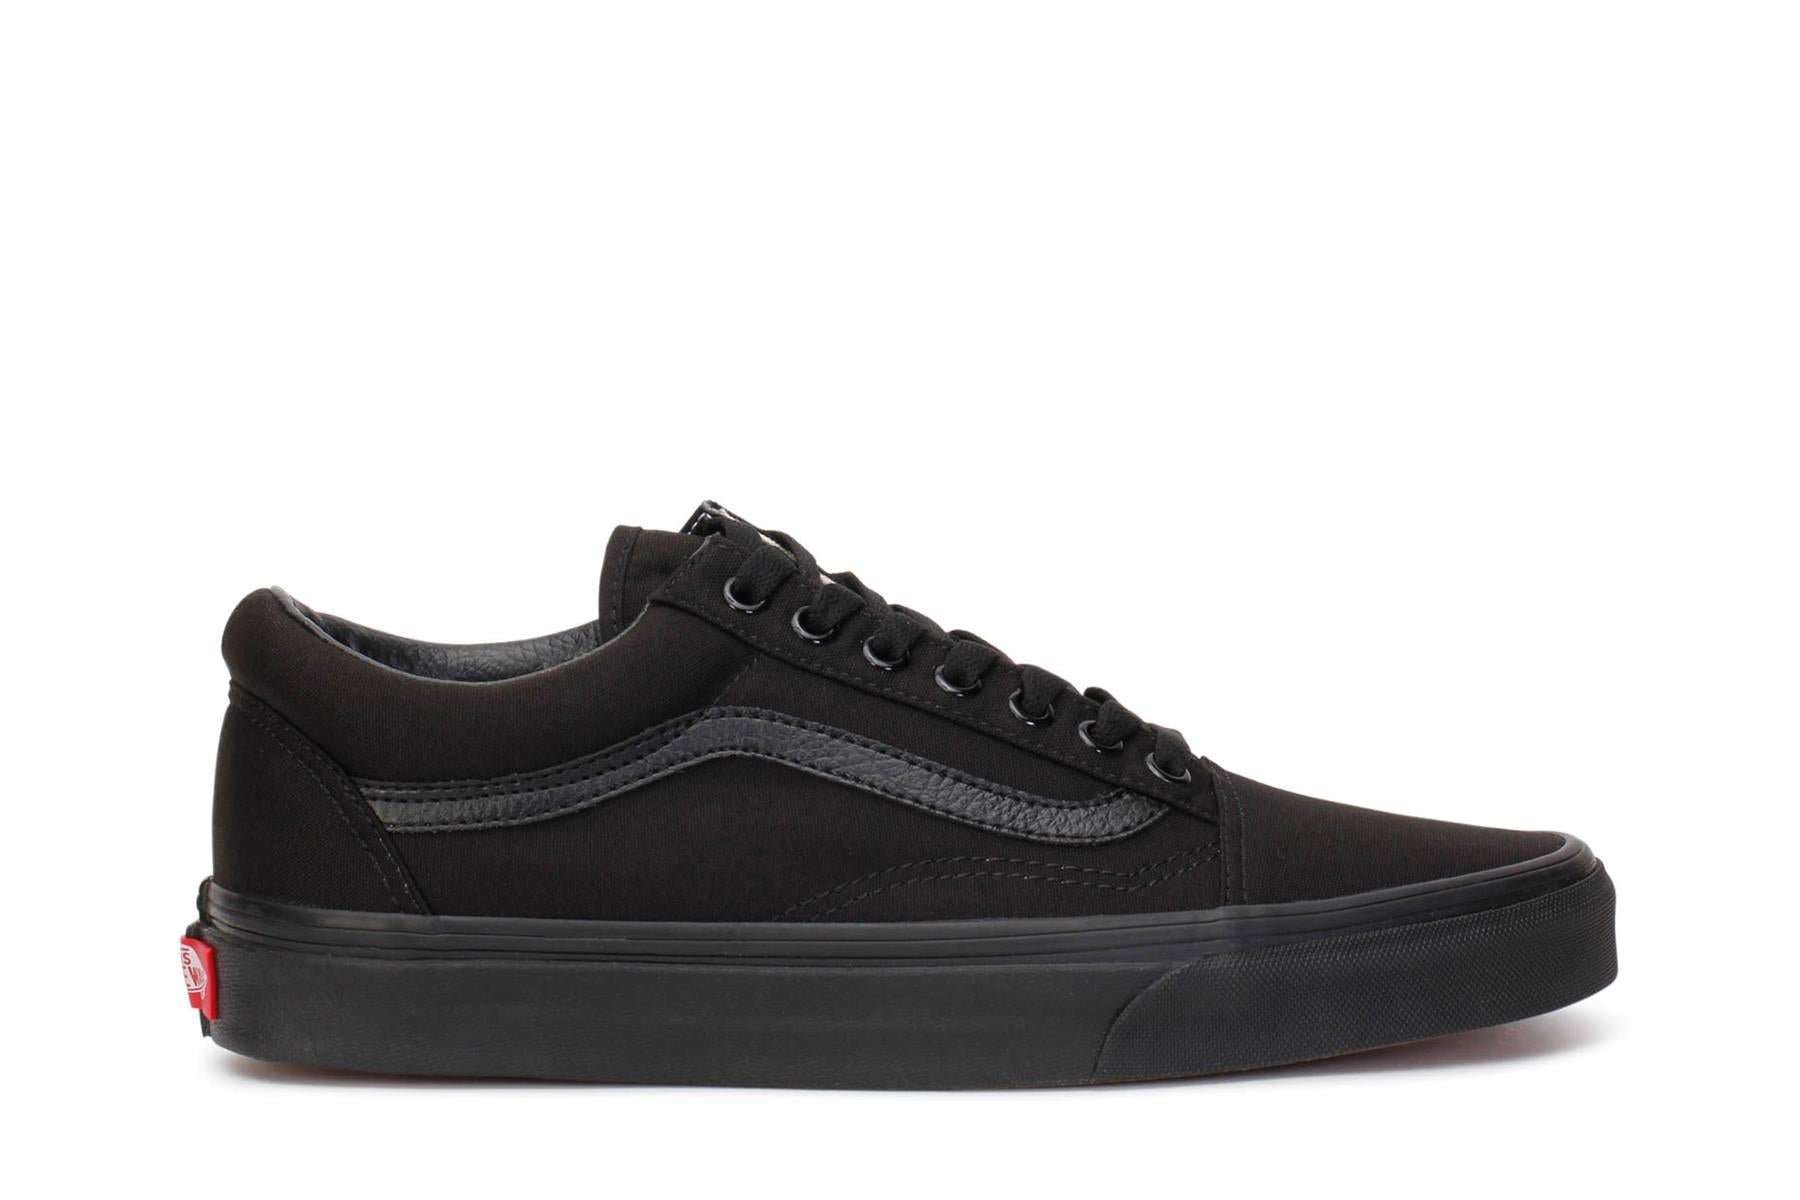 vans-mens-sneakers-canvas-old-skool-black-black-vn000d3hbka-main